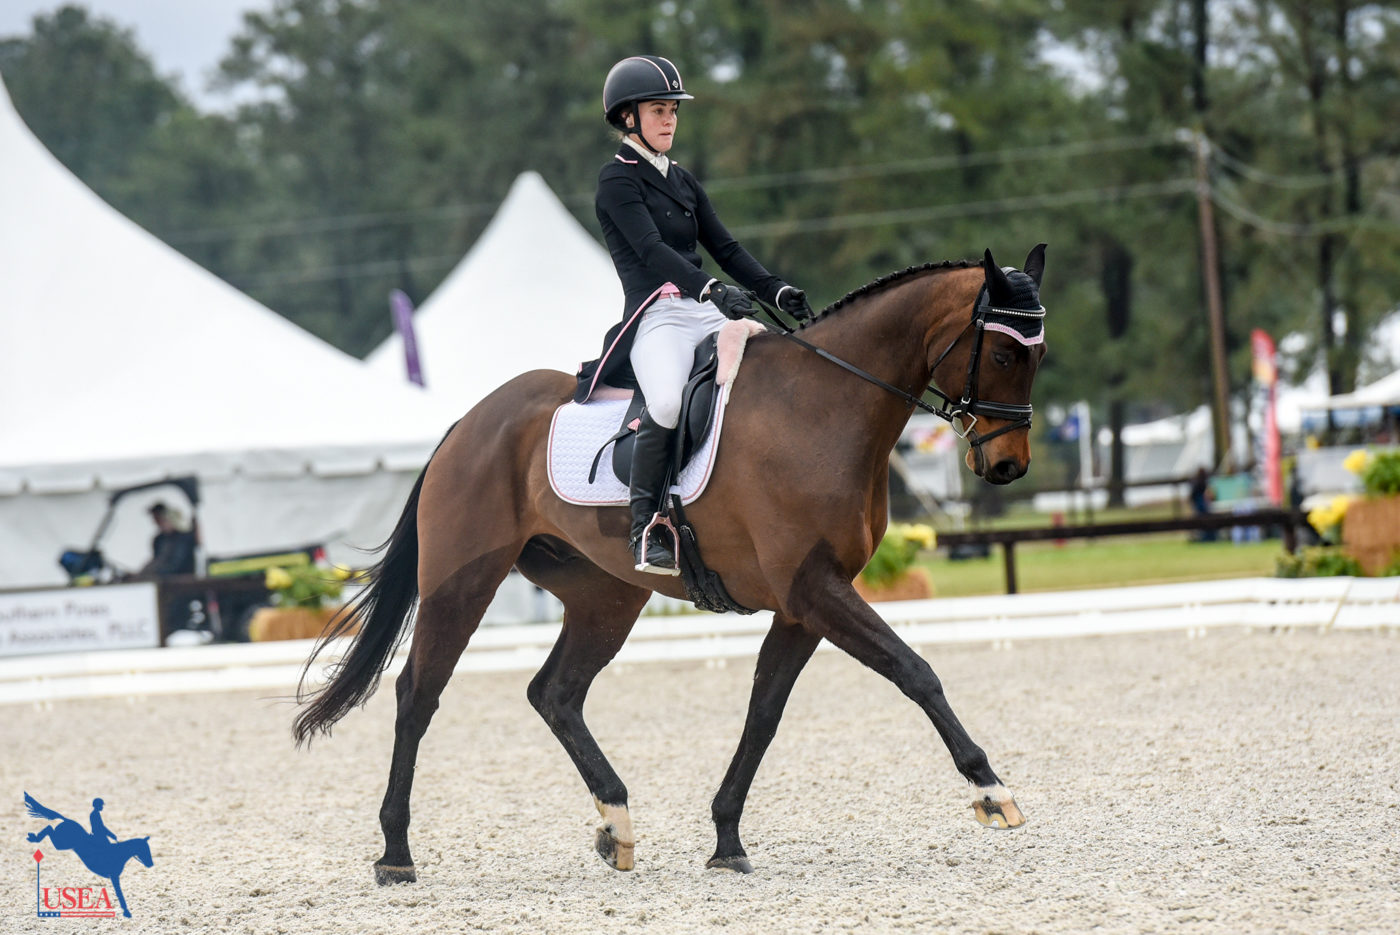 13thT - Charlotte Collier and Clifford M - 34.5